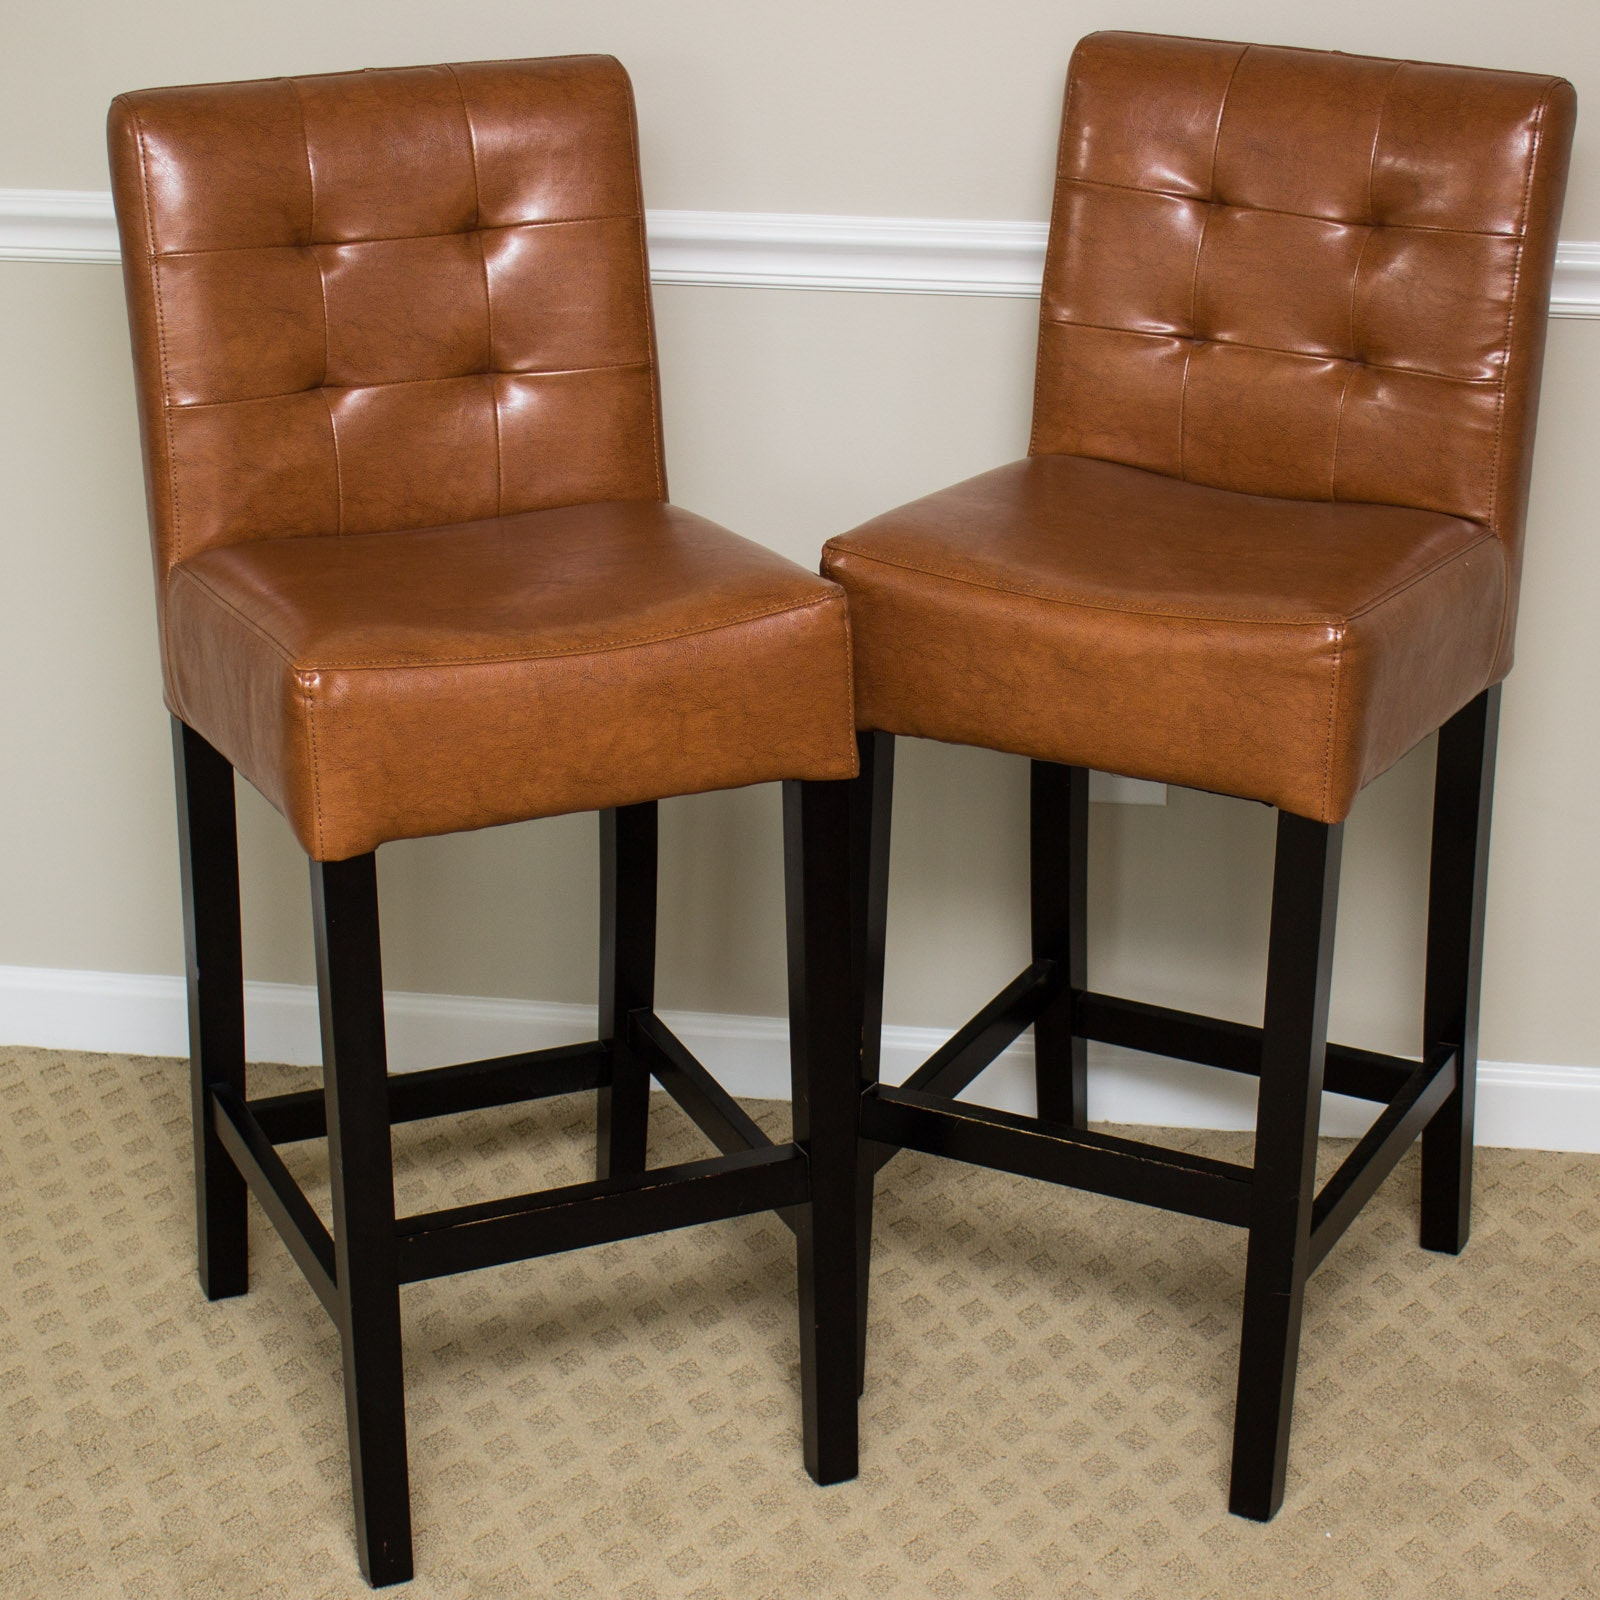 Pair of Cognac Faux Leather Bar Stools